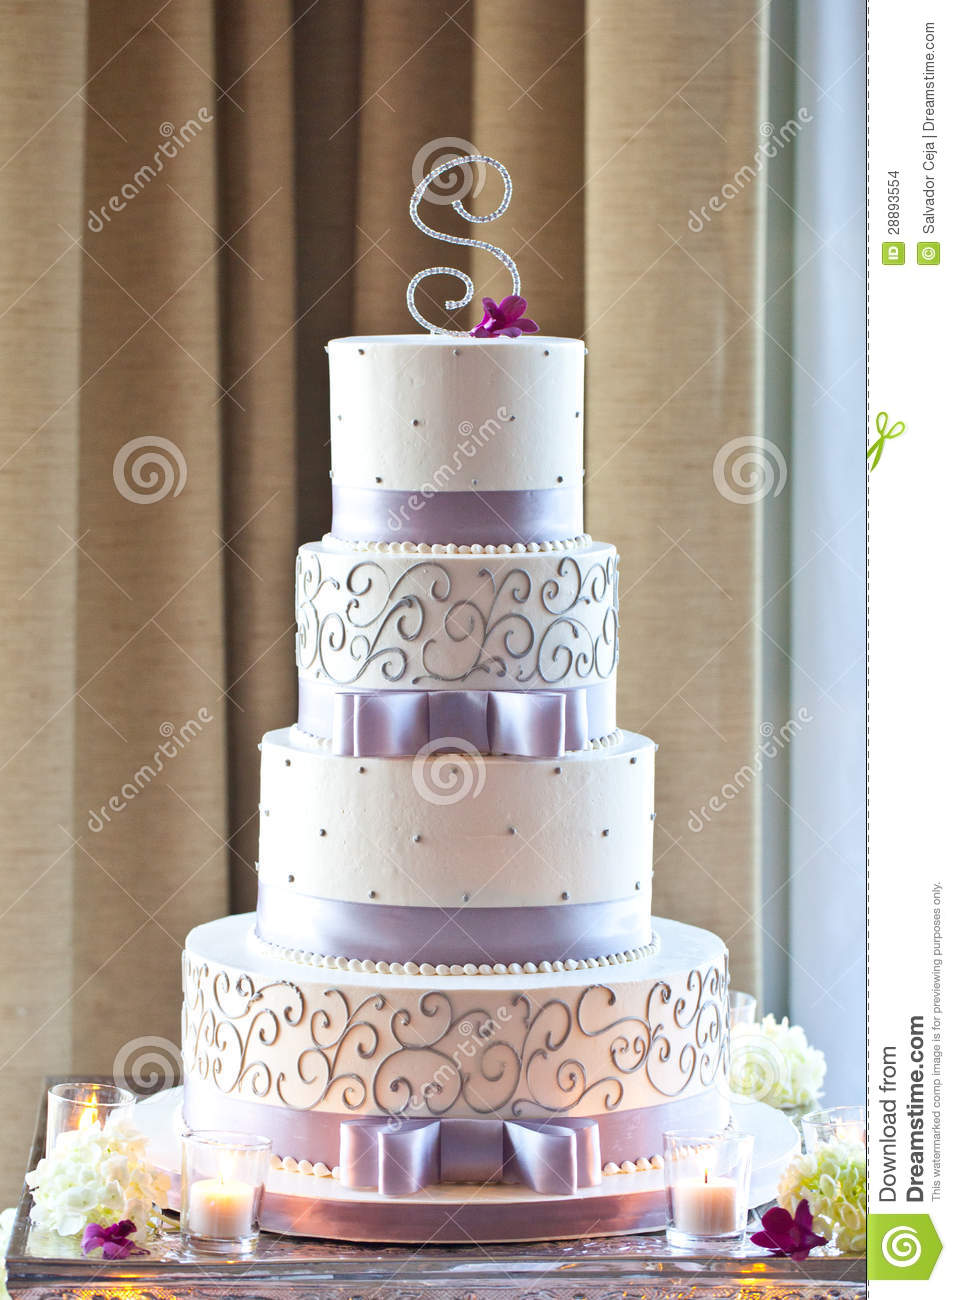 Wedding Cake With Flowers Stock Photo Image Of Glass